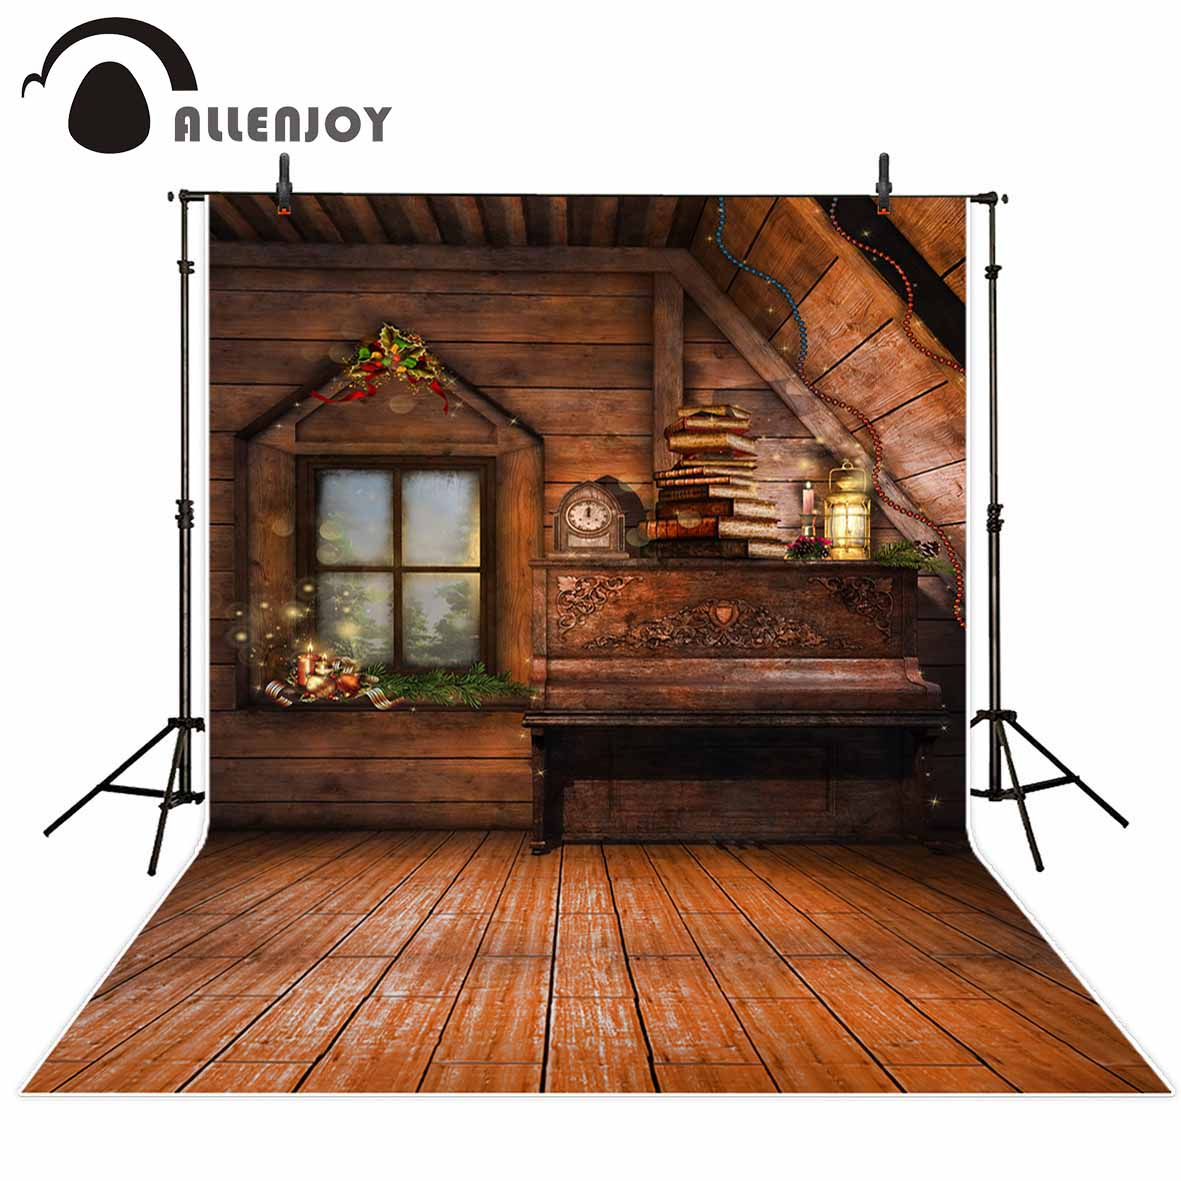 Allenjoy photography backdrop Christmas decorations vintage Piano alarm clock background for photo studio camera fotografica great spaces home extensions лучшие пристройки к дому